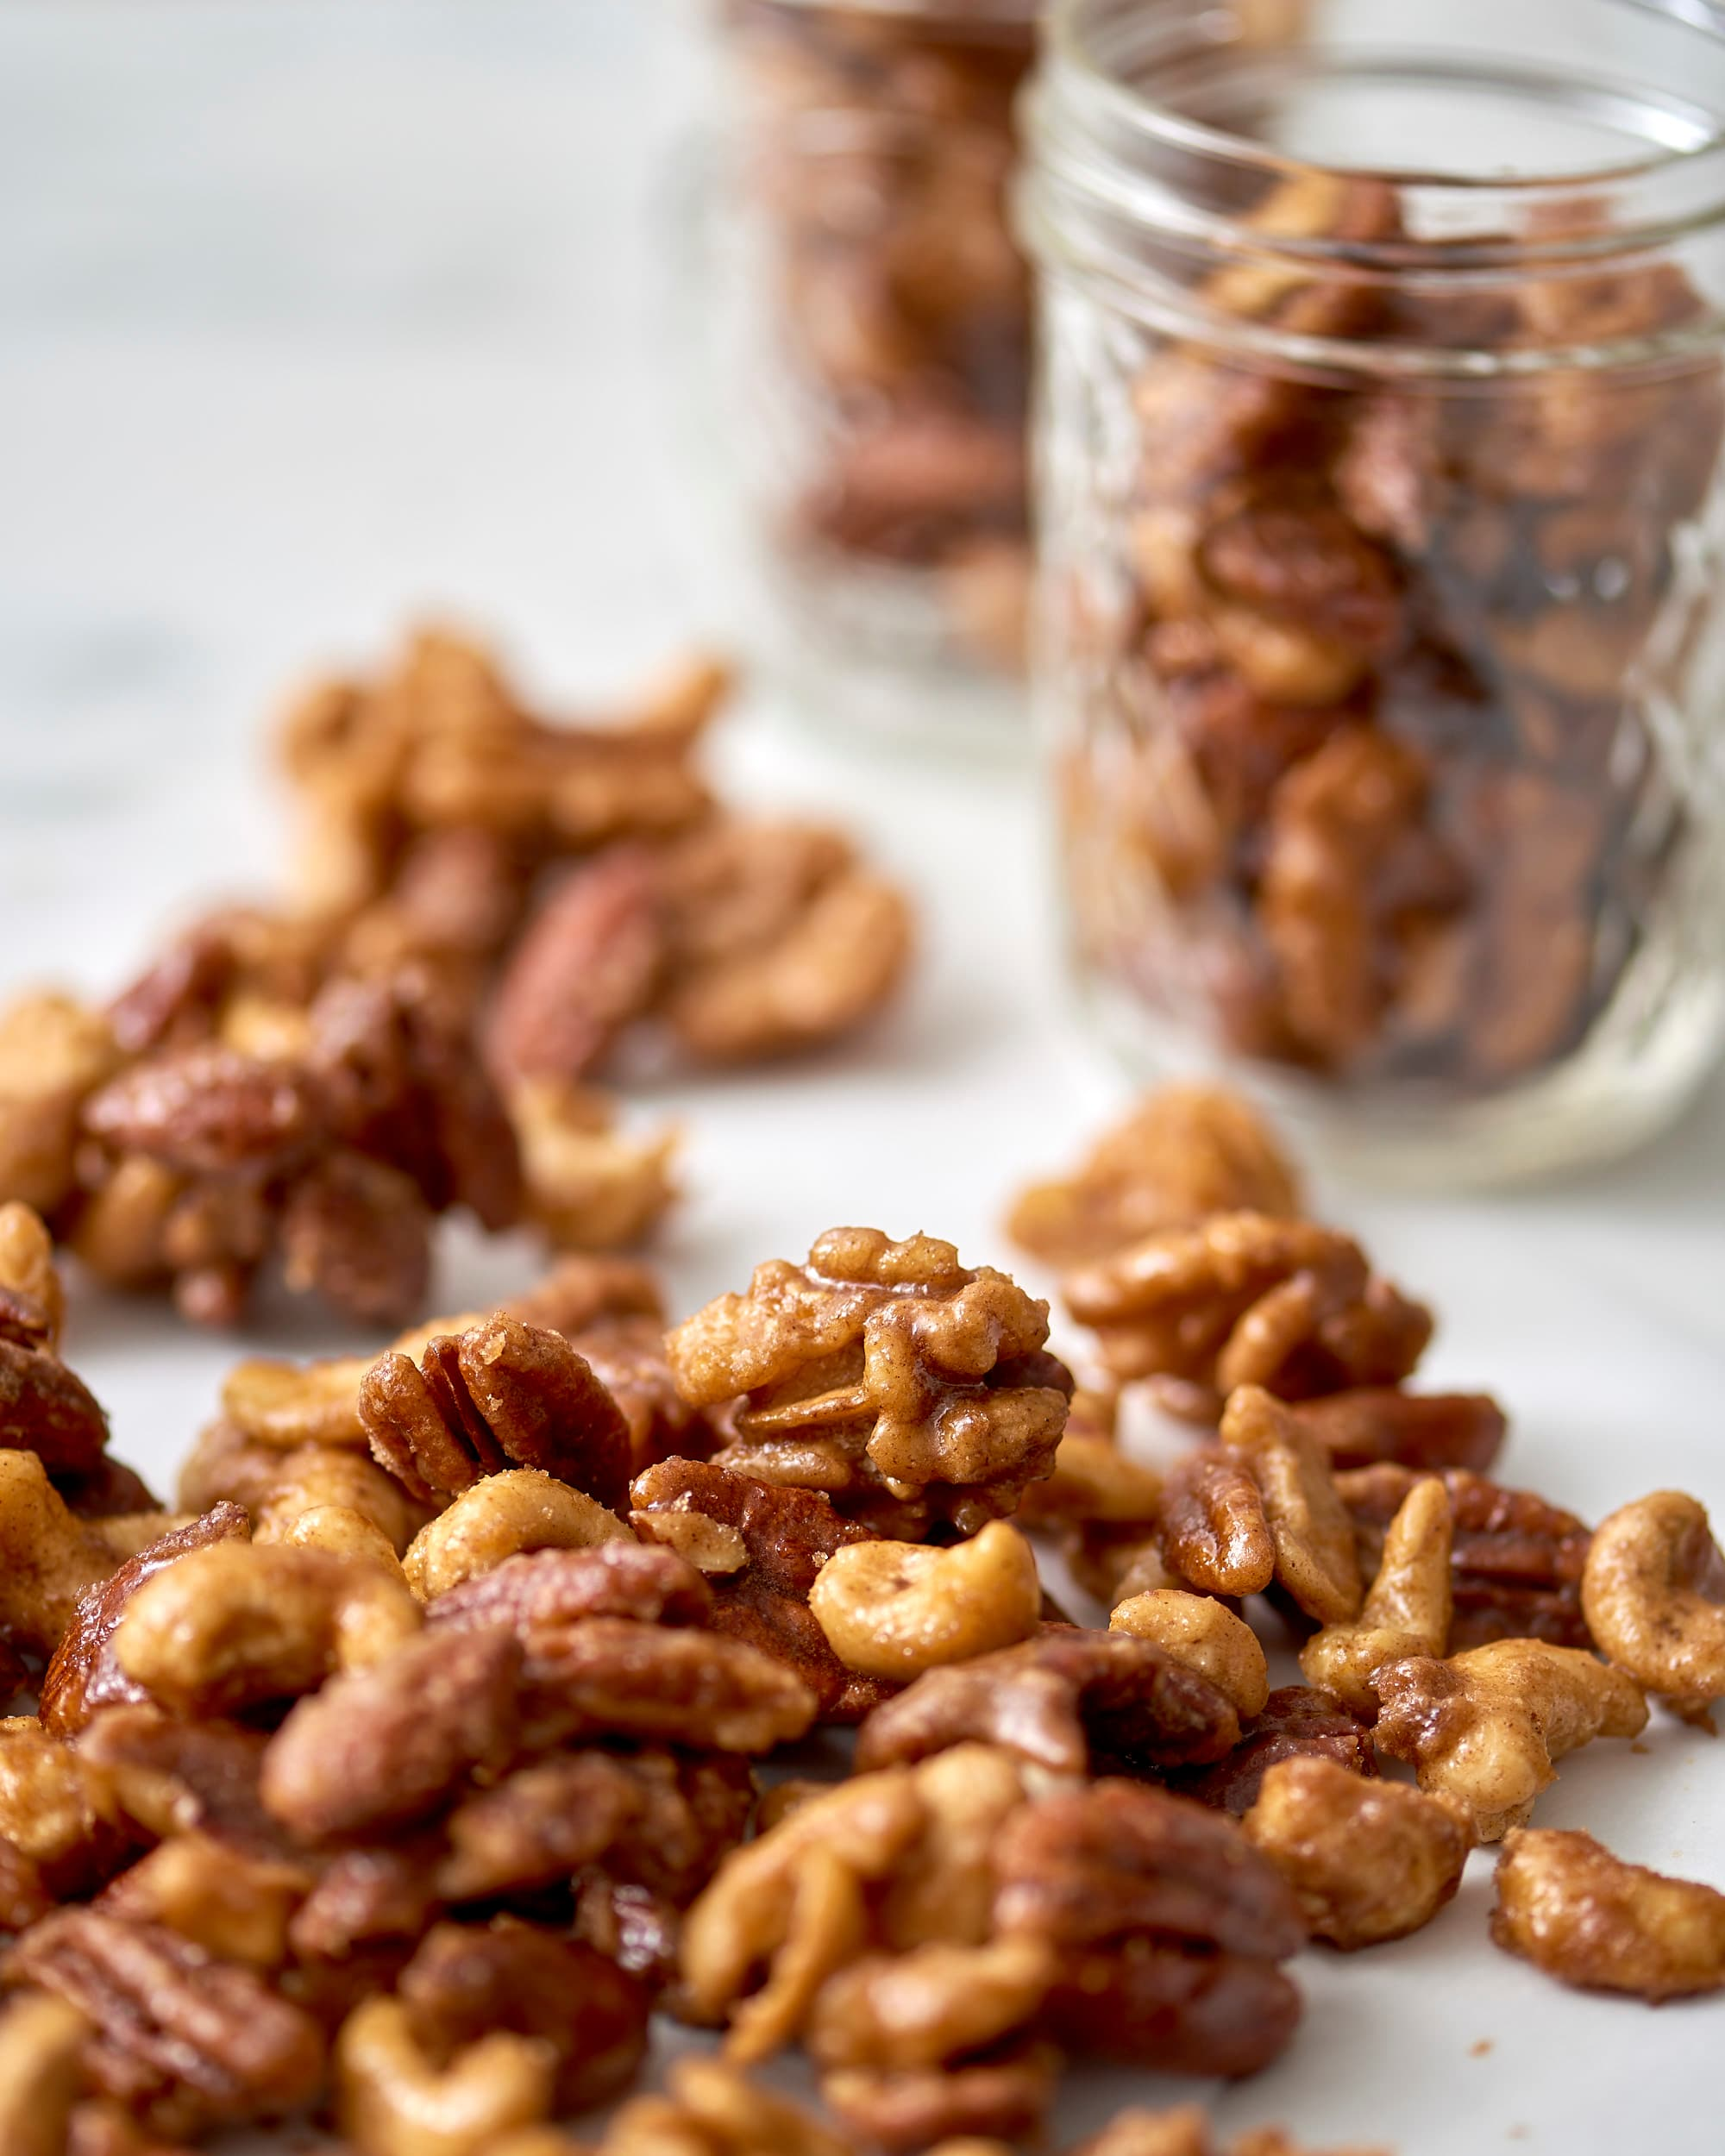 How to Make Slow Cooker Spiced Nuts